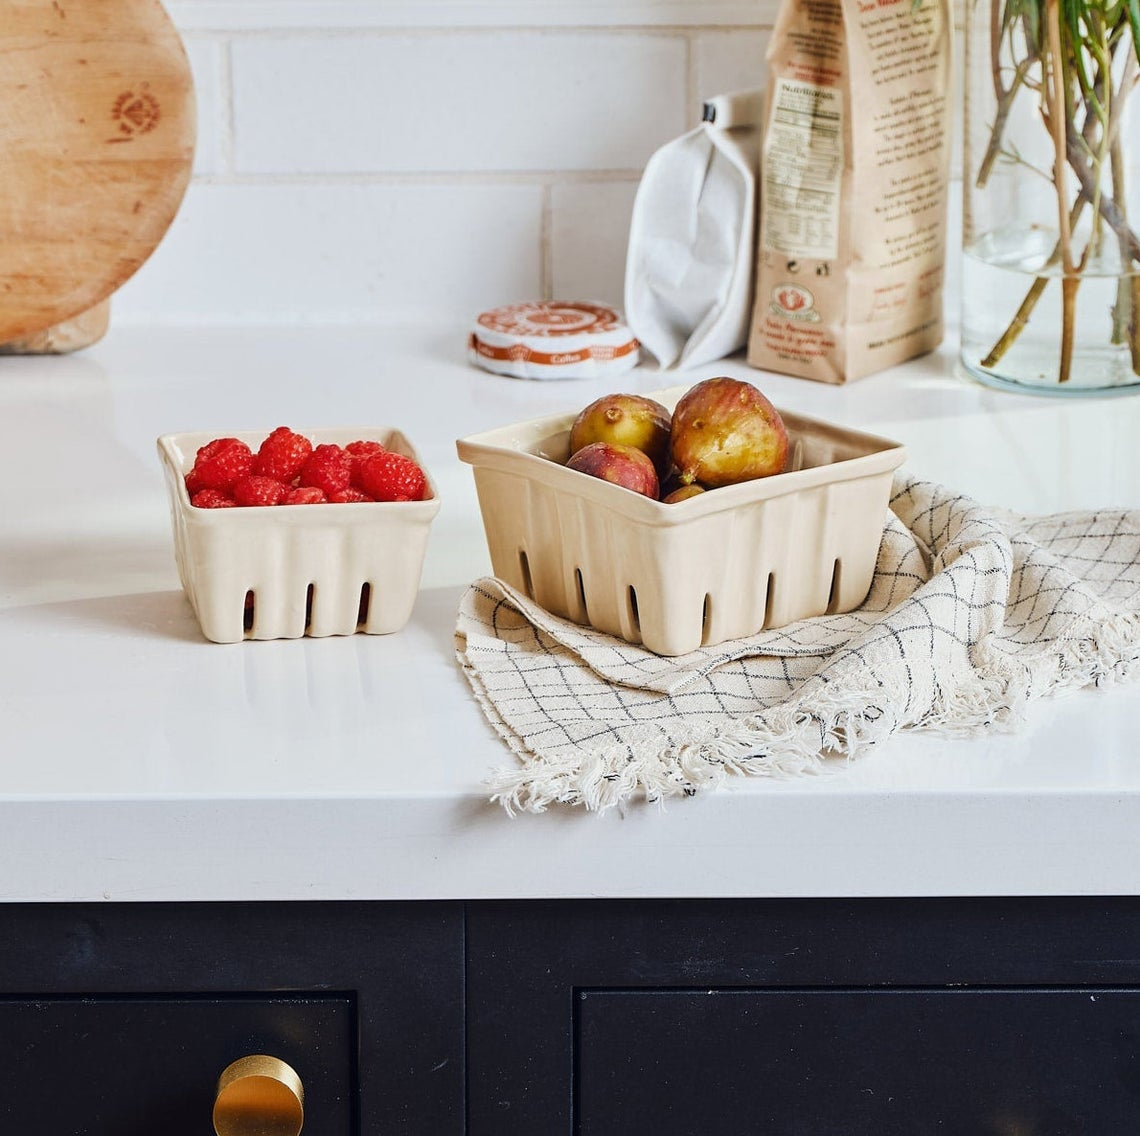 ceramic berry baskets on counter